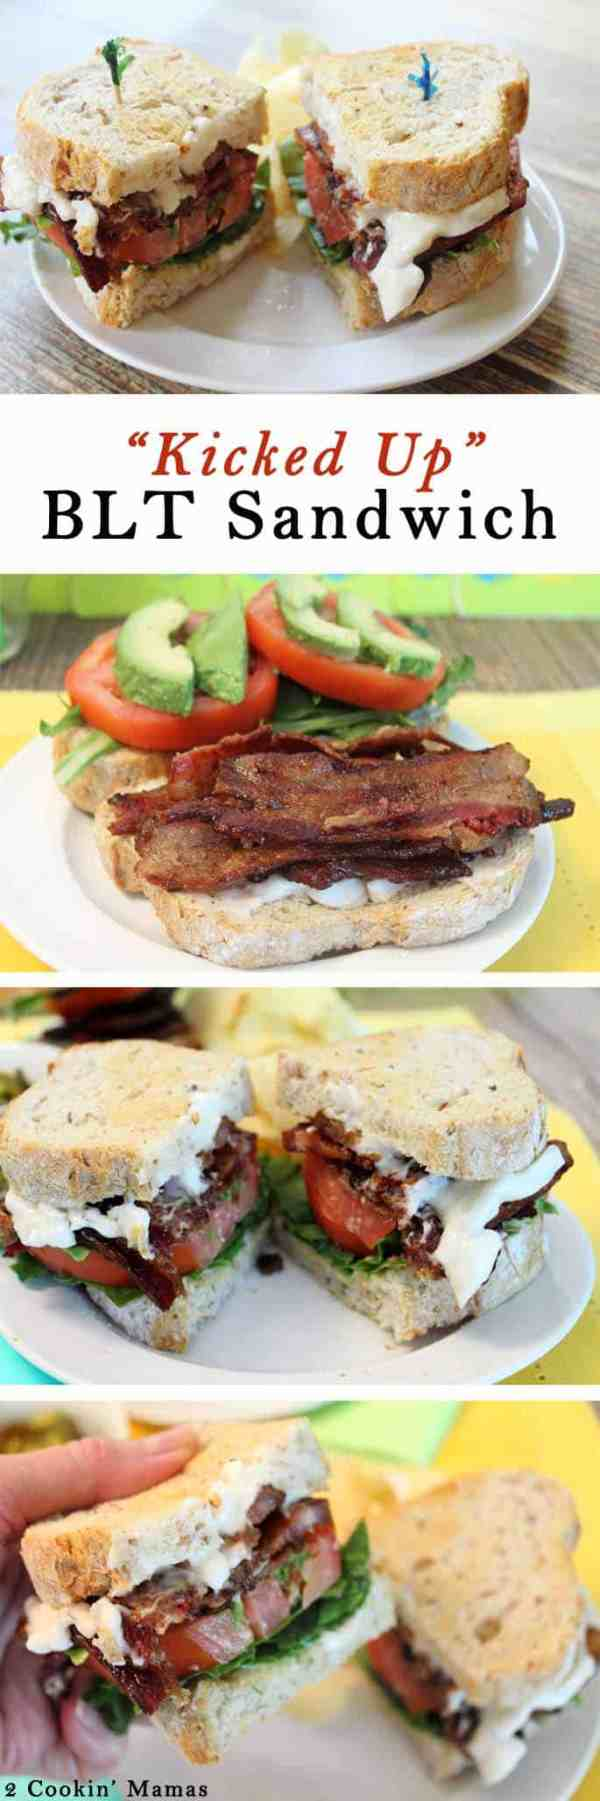 Kicked Up BLT Sandwich | 2 Cookin Mamas A BLT with a little something extra - jalapeno bacon! Dress it with bacon mayo, arugula, plump juicy tomatoes and avocado & you've got yourself one unforgettable BLT sandwich!